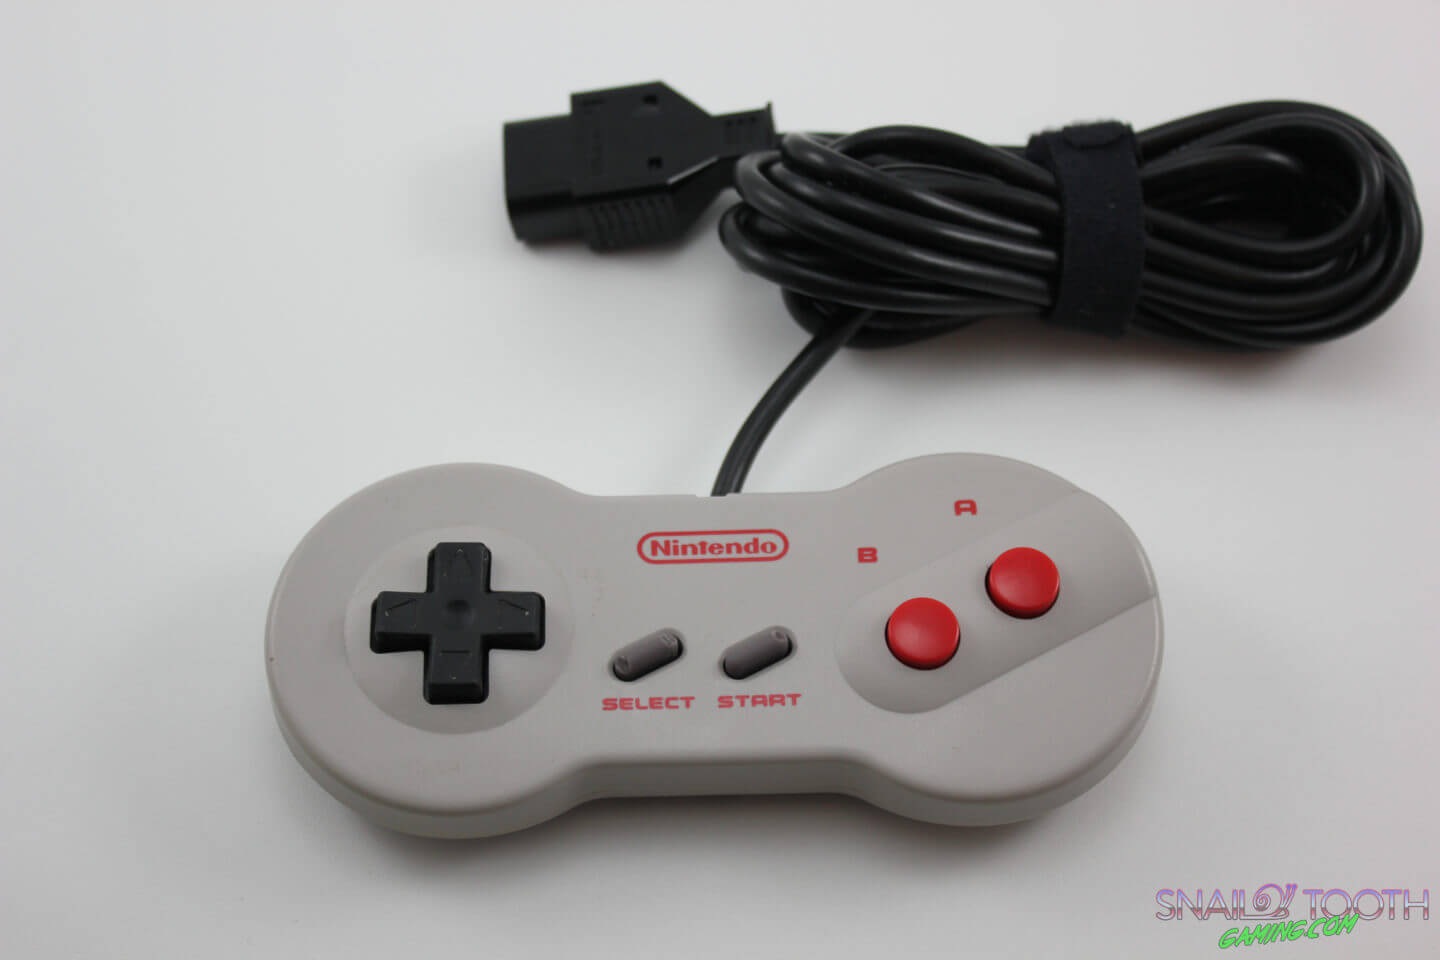 The Best Controllers for Classic Nintendo Consoles | Snail